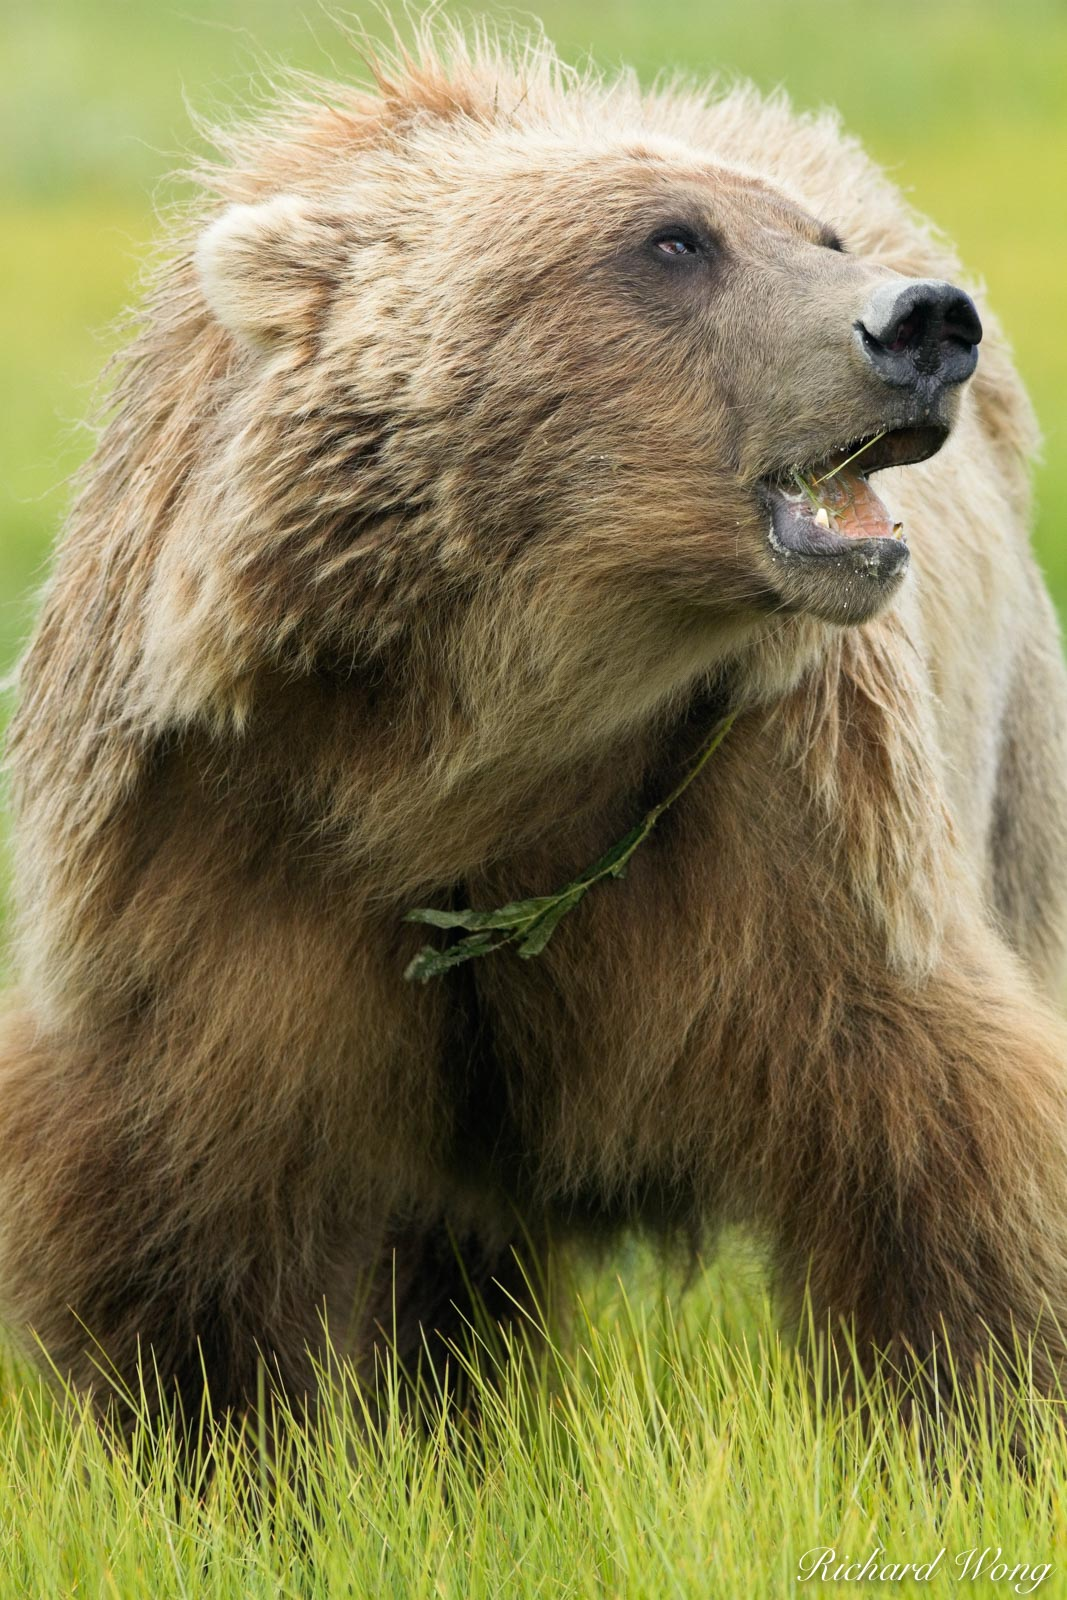 Grizzly Bear Feeding on Grass, Lake Clark National Park, Alaska, photo, photo